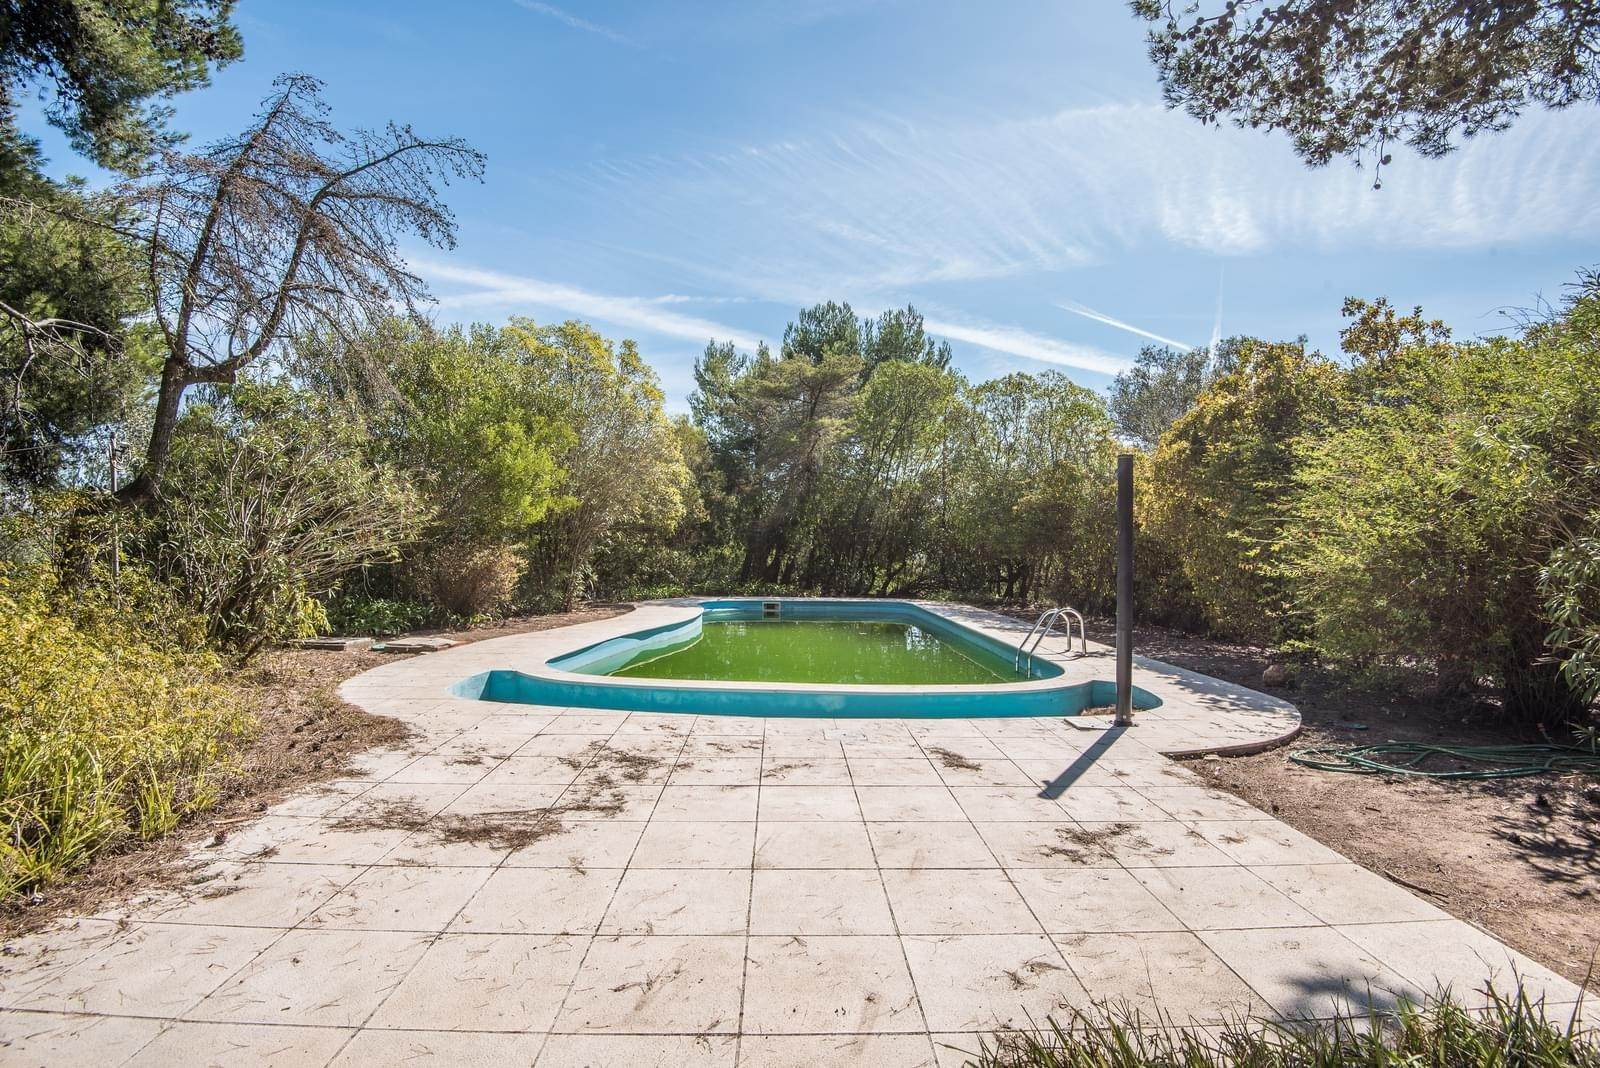 19. 別墅 / 联排别墅 為 出售 在 Unique property, located next to Quinta da Marinha, a quiet area.The property comprises six small villas, with deep refu... Cascais, 葡萄牙